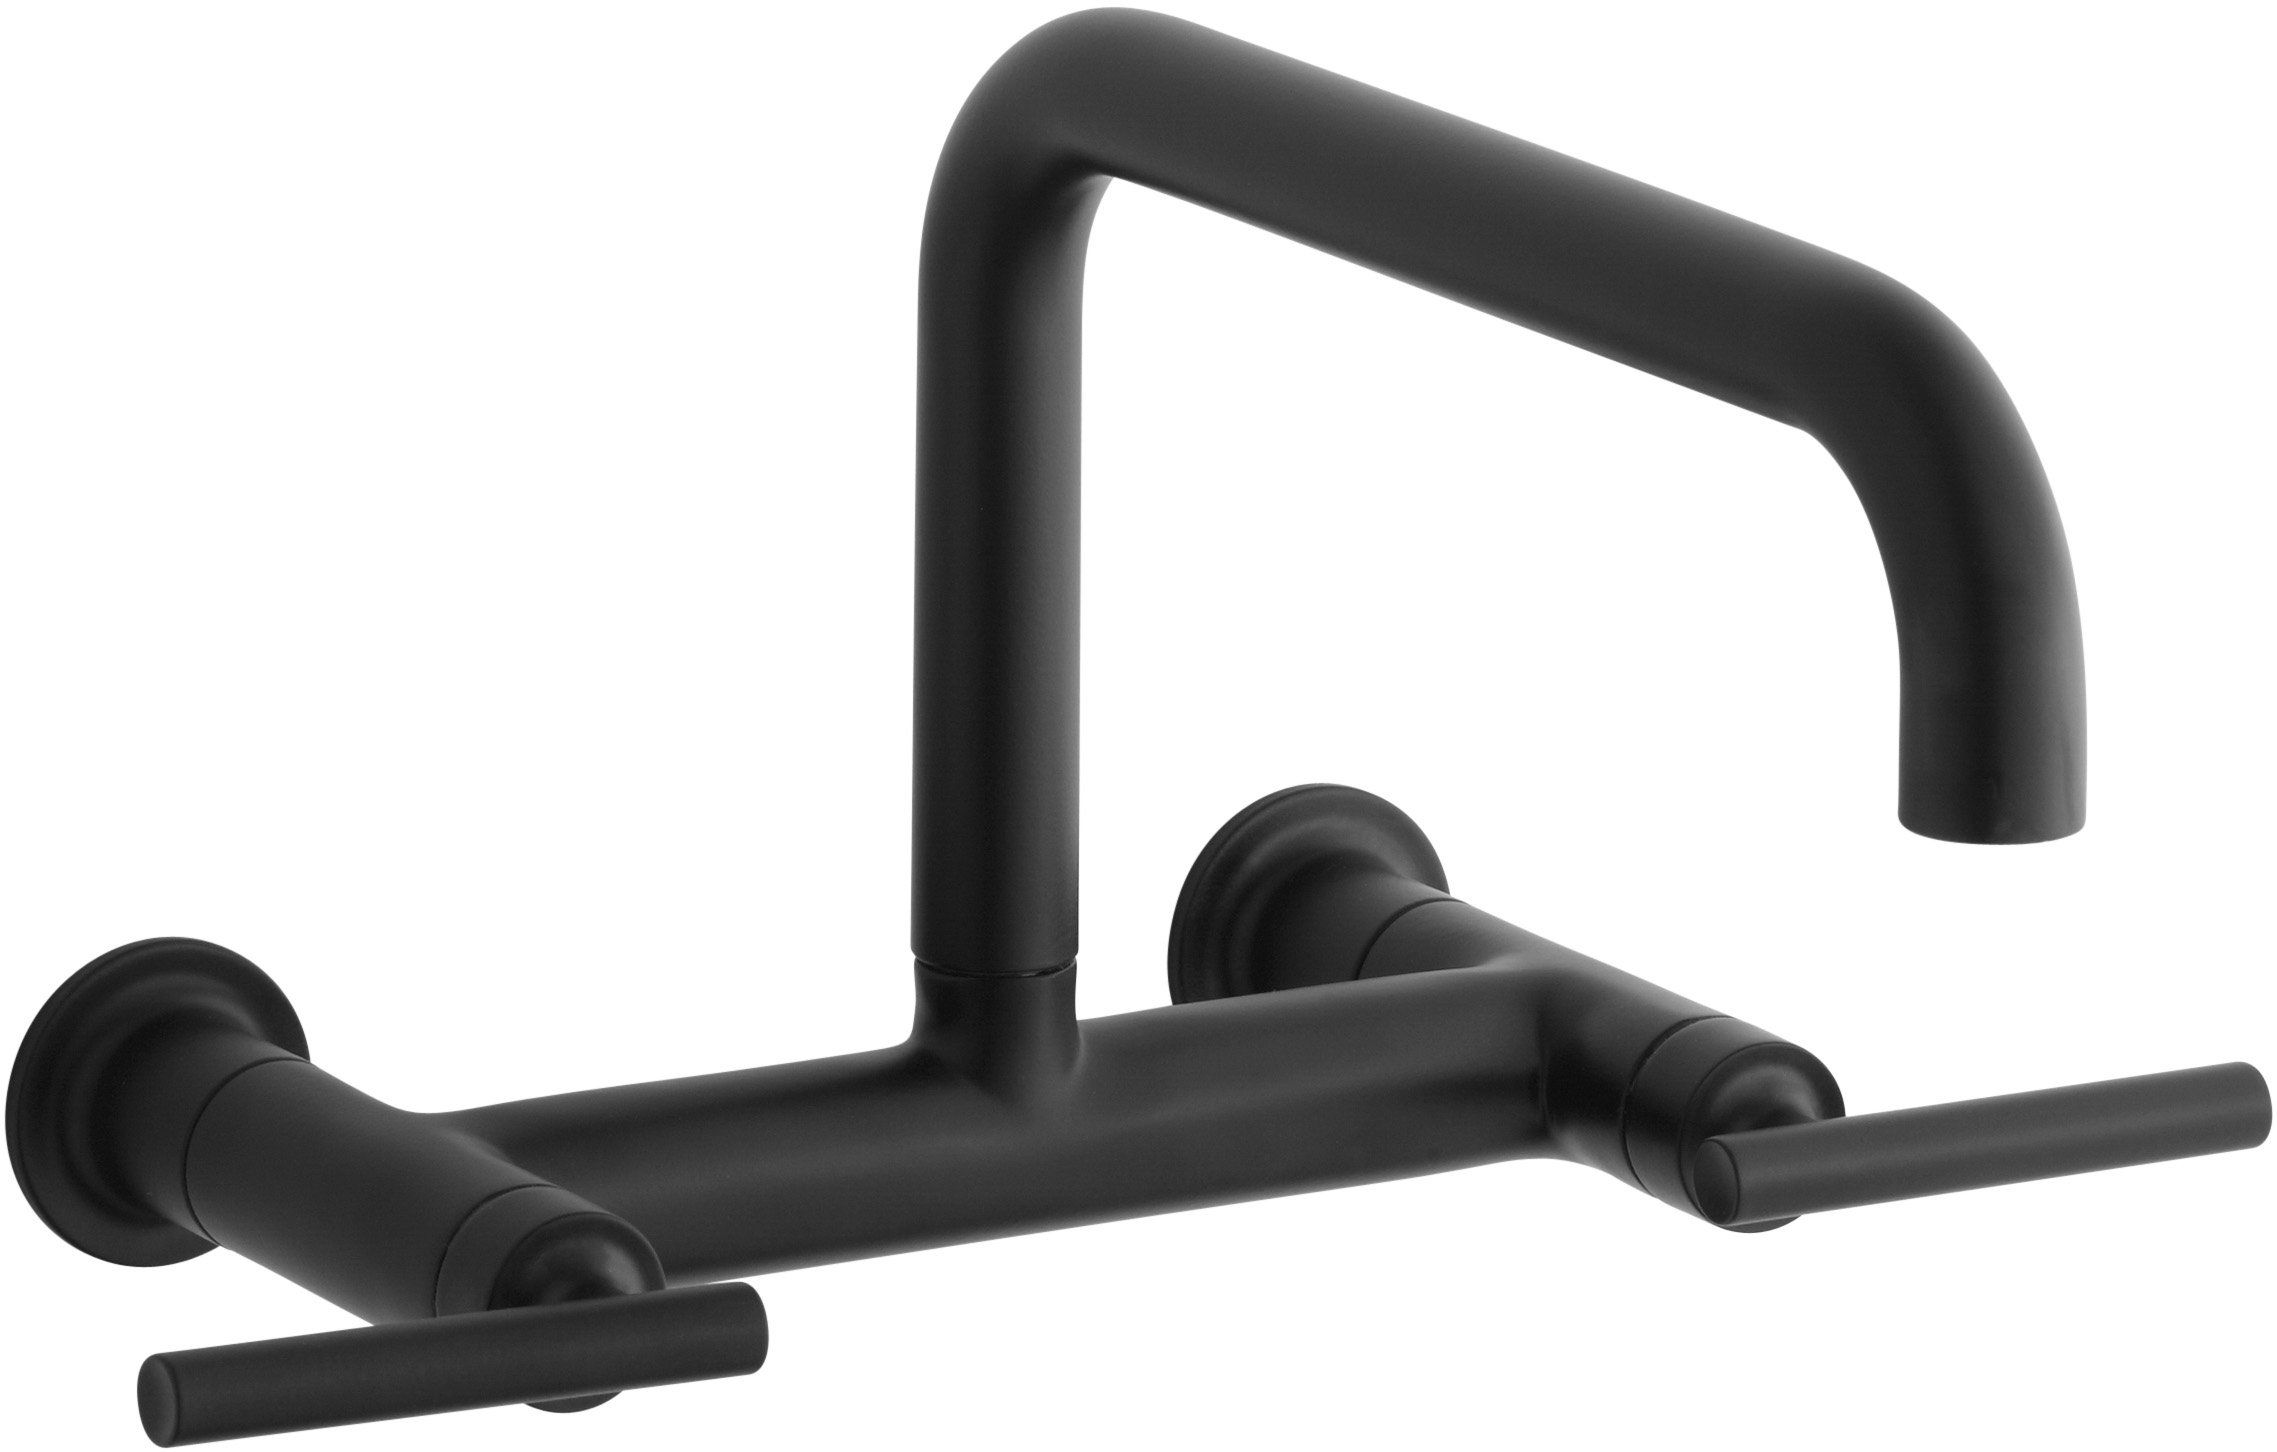 KOHLER K-7549-4-BL Purist Wall-Mount Bridge Faucet, Matte Black ...